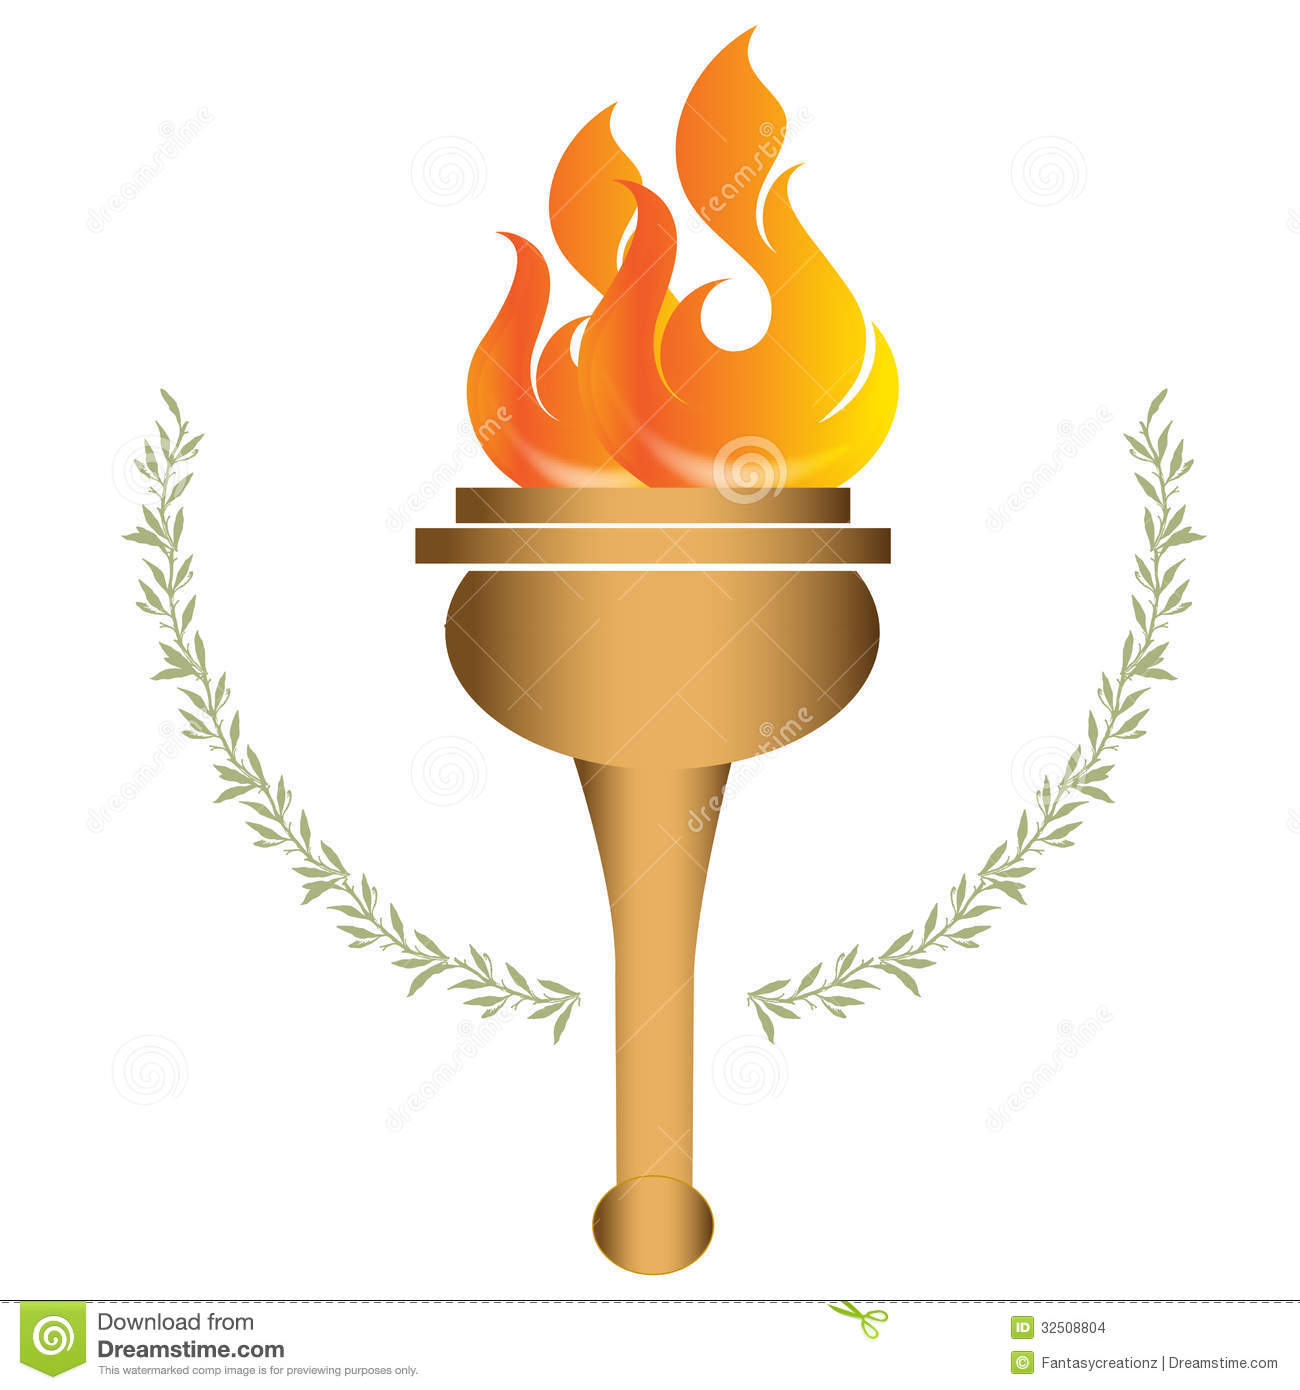 Torche olympique images stock image 32508804 - Flamme olympique dessin ...